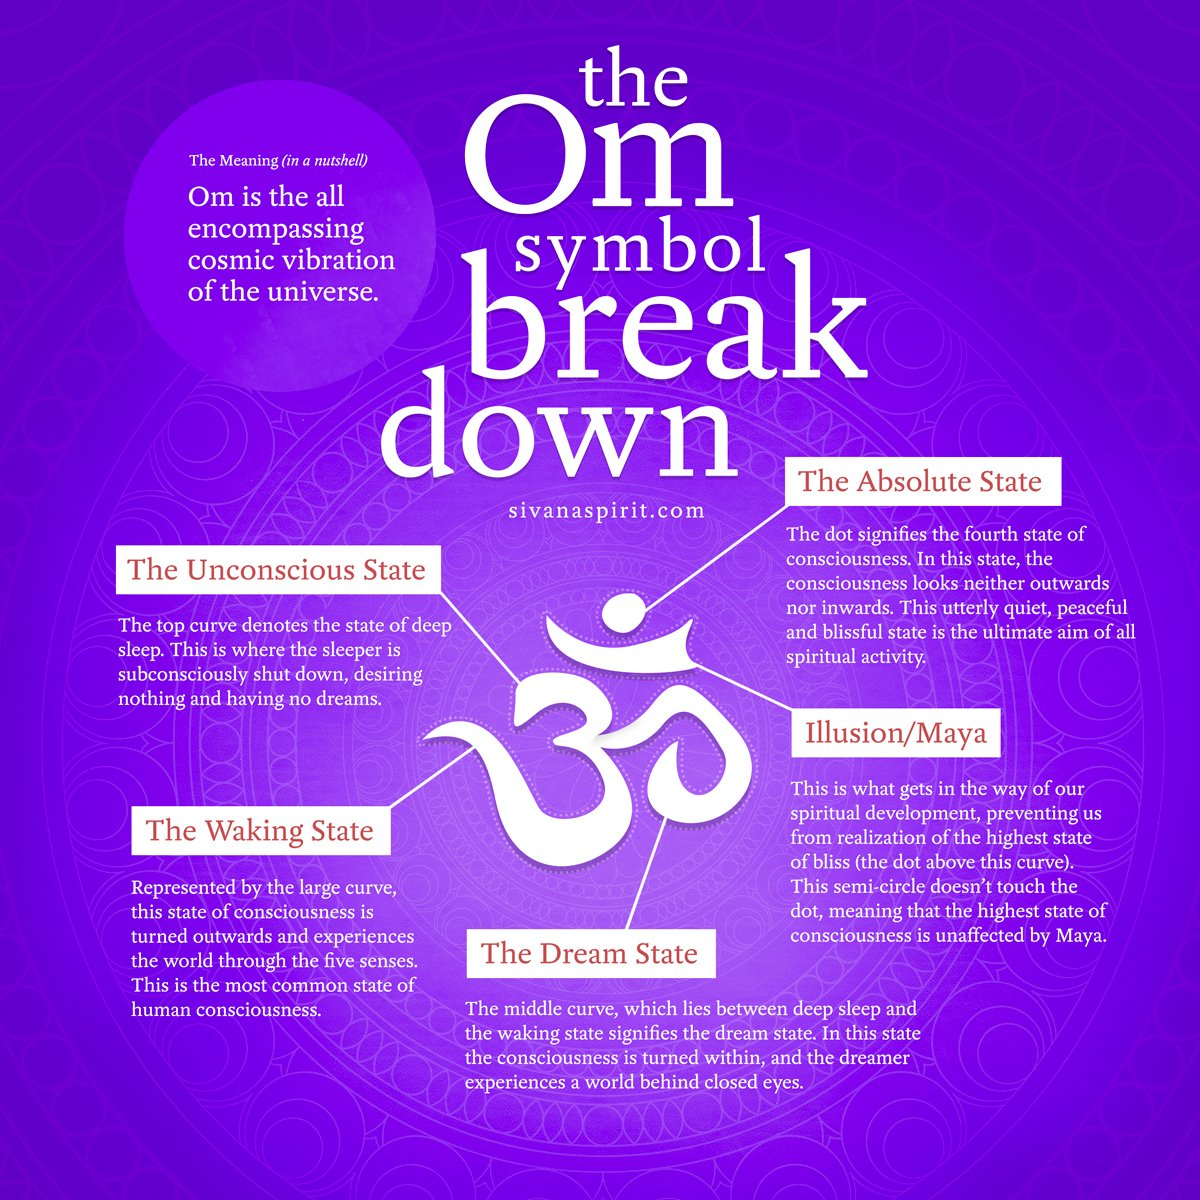 The meaning of the symbol OM